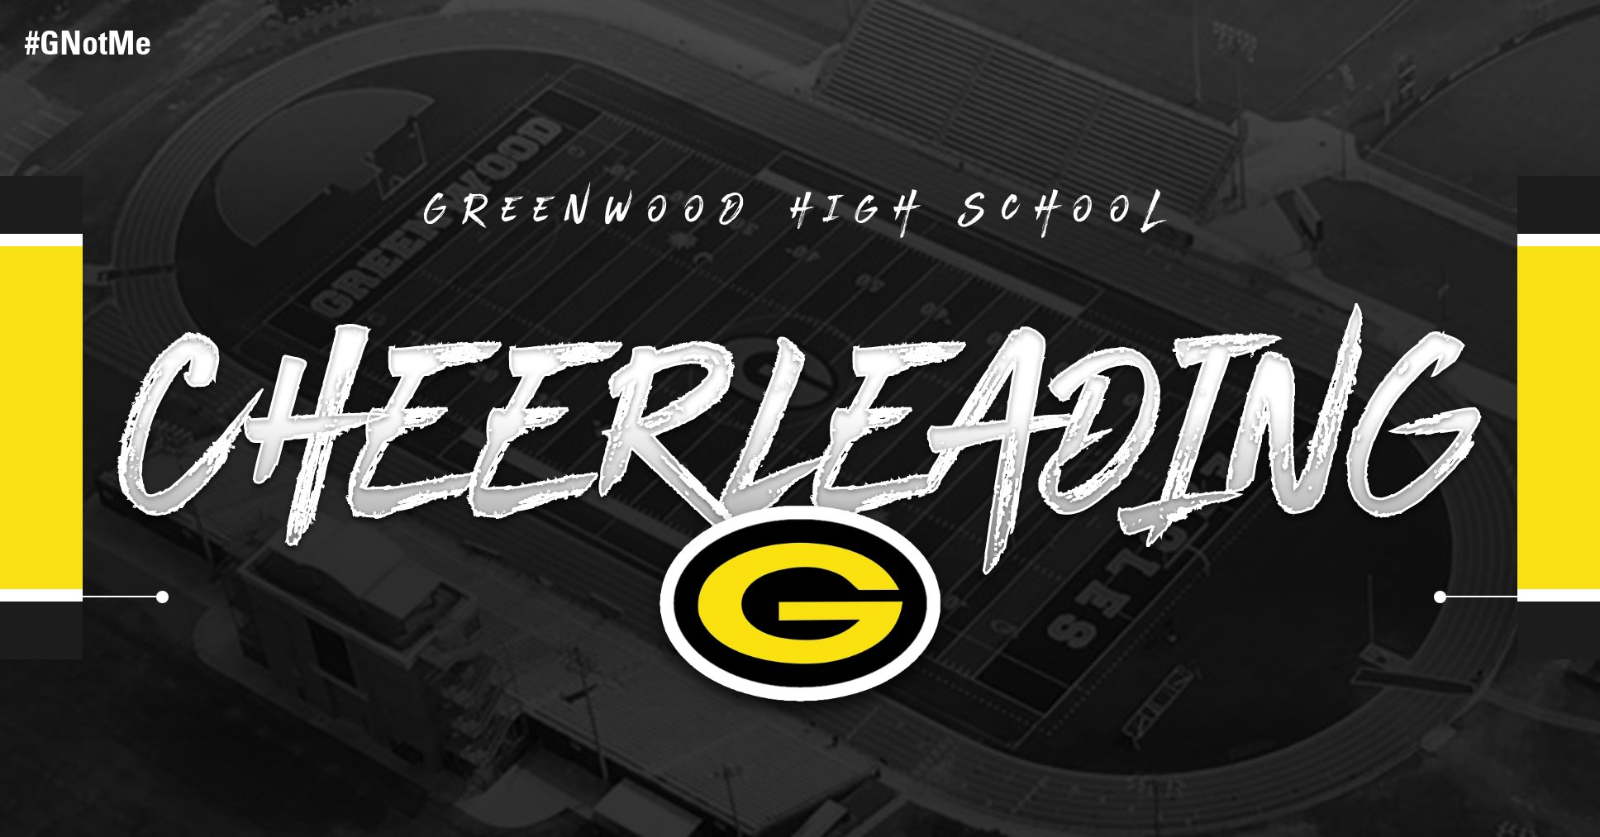 Congratulations to the 20-21 Greenwood Eagles Cheerleaders